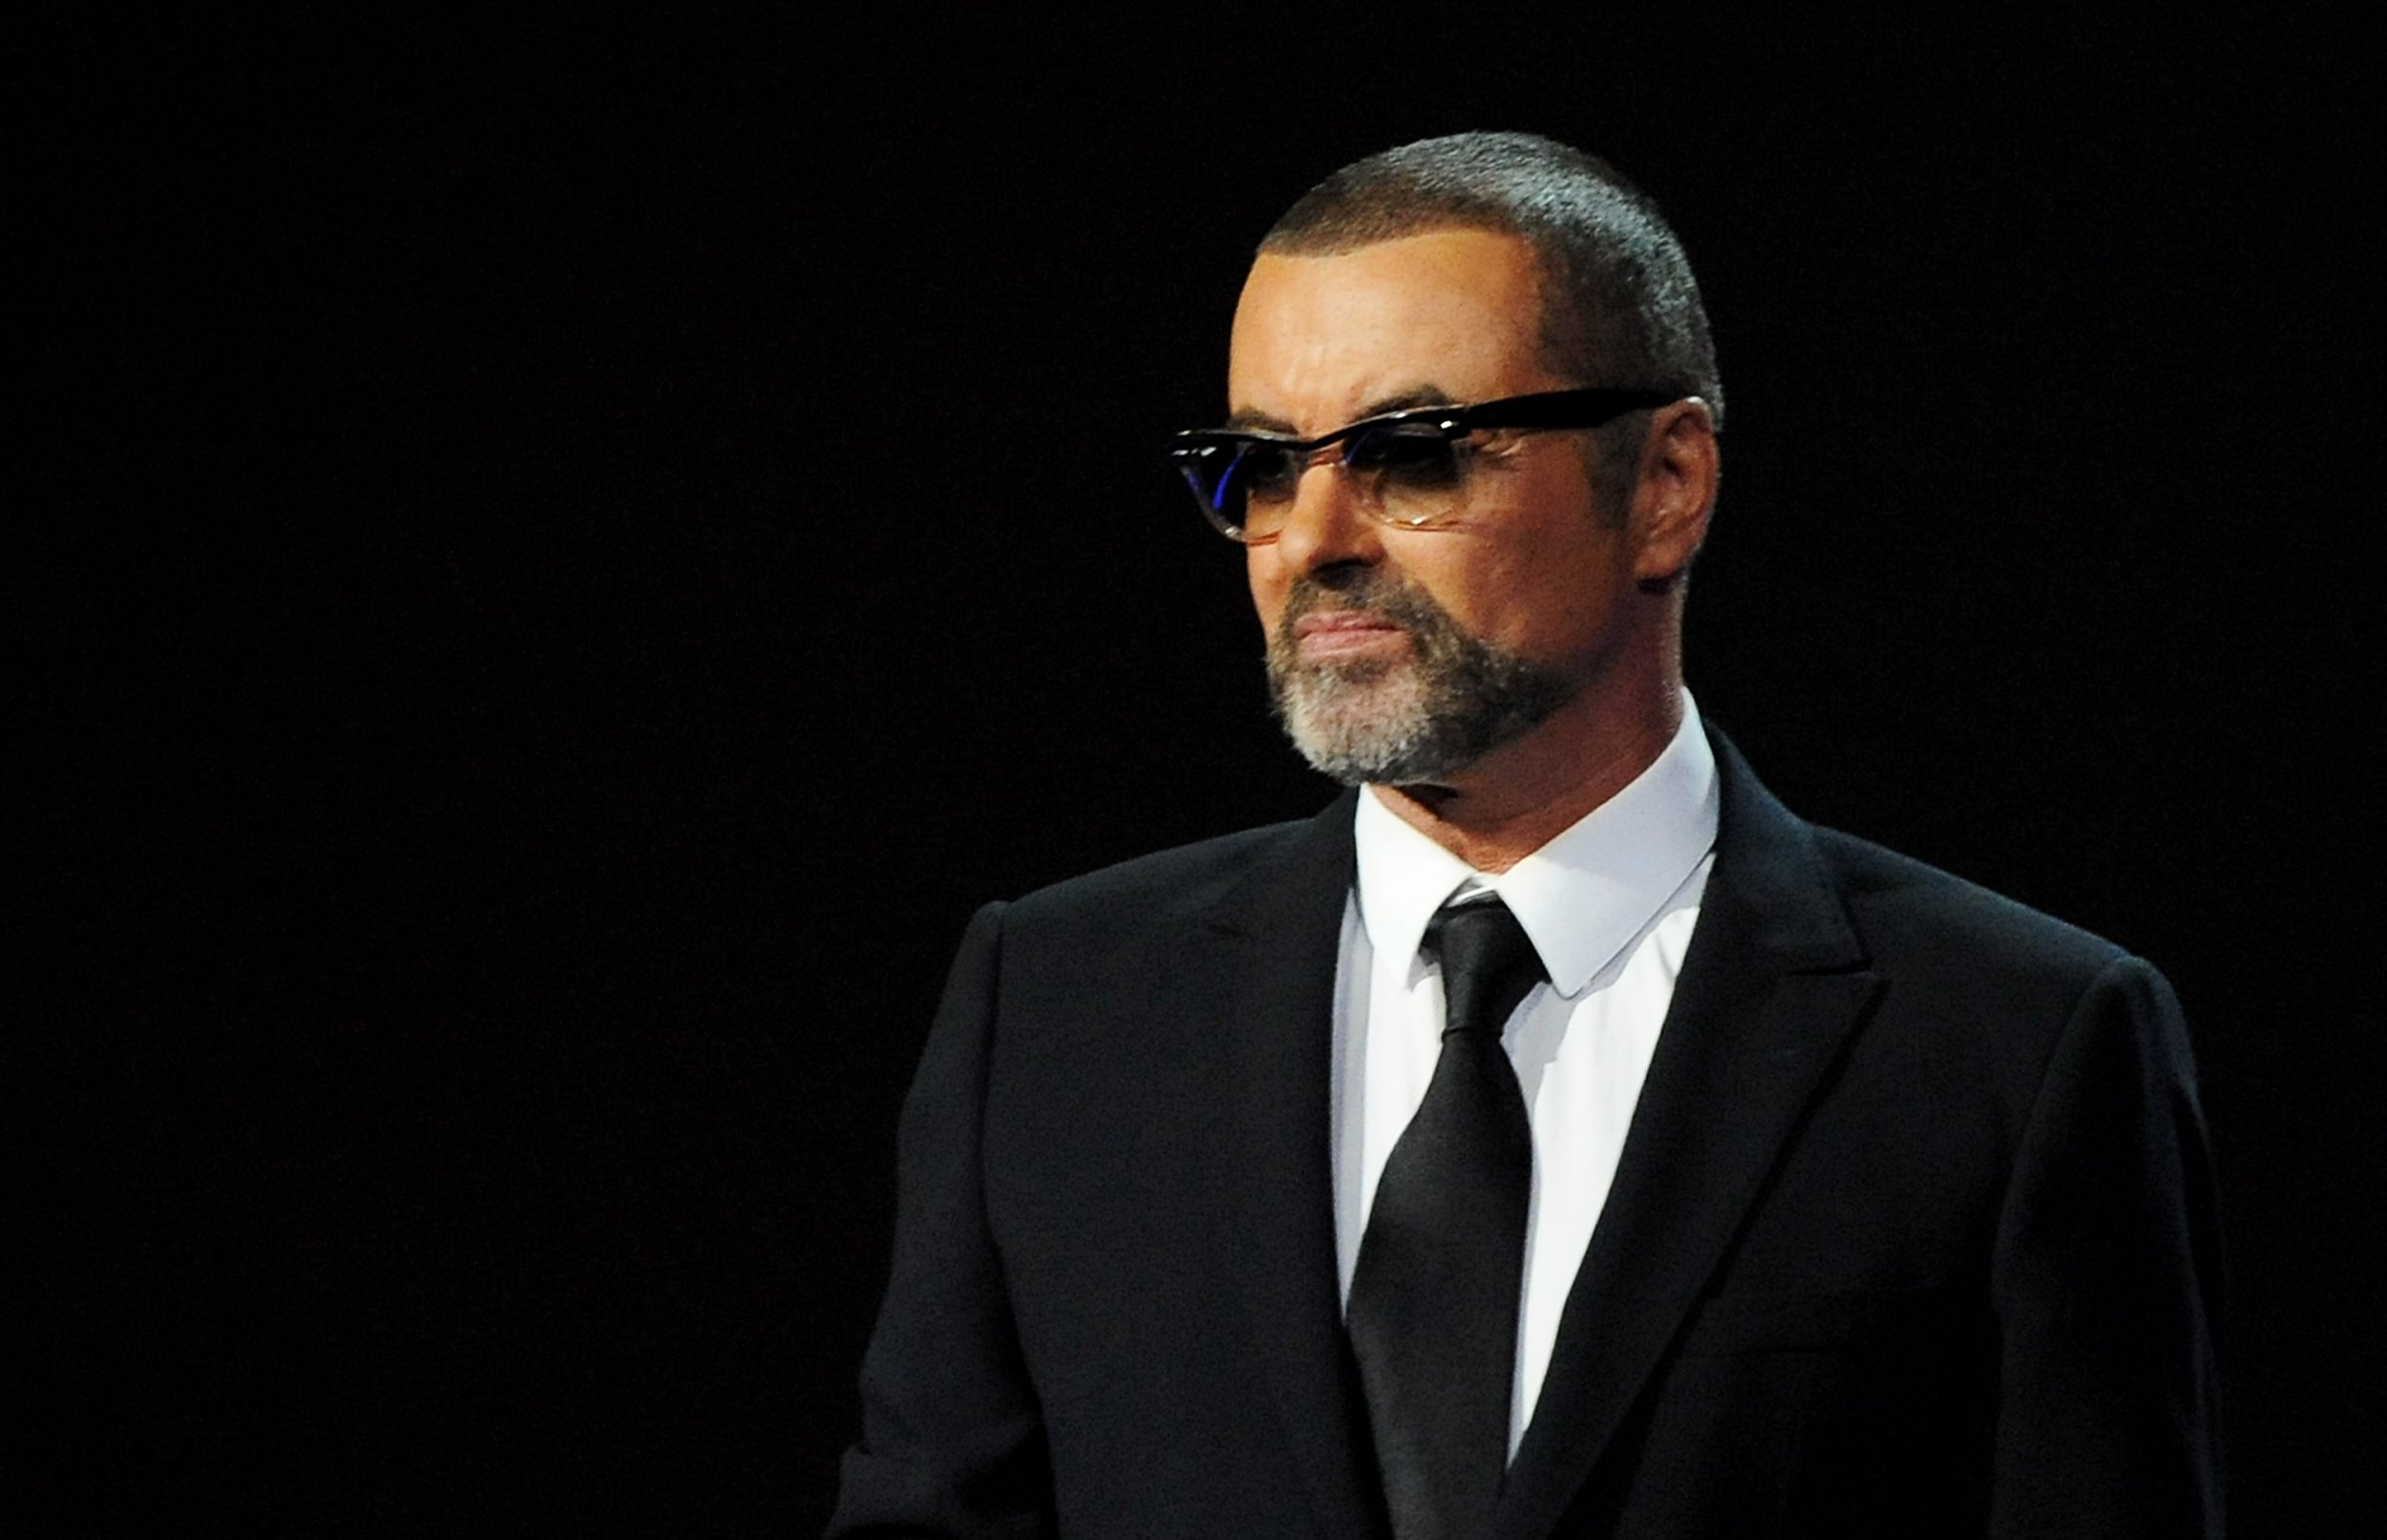 George Michael's cousin claims singer was 'given methadone' in final days